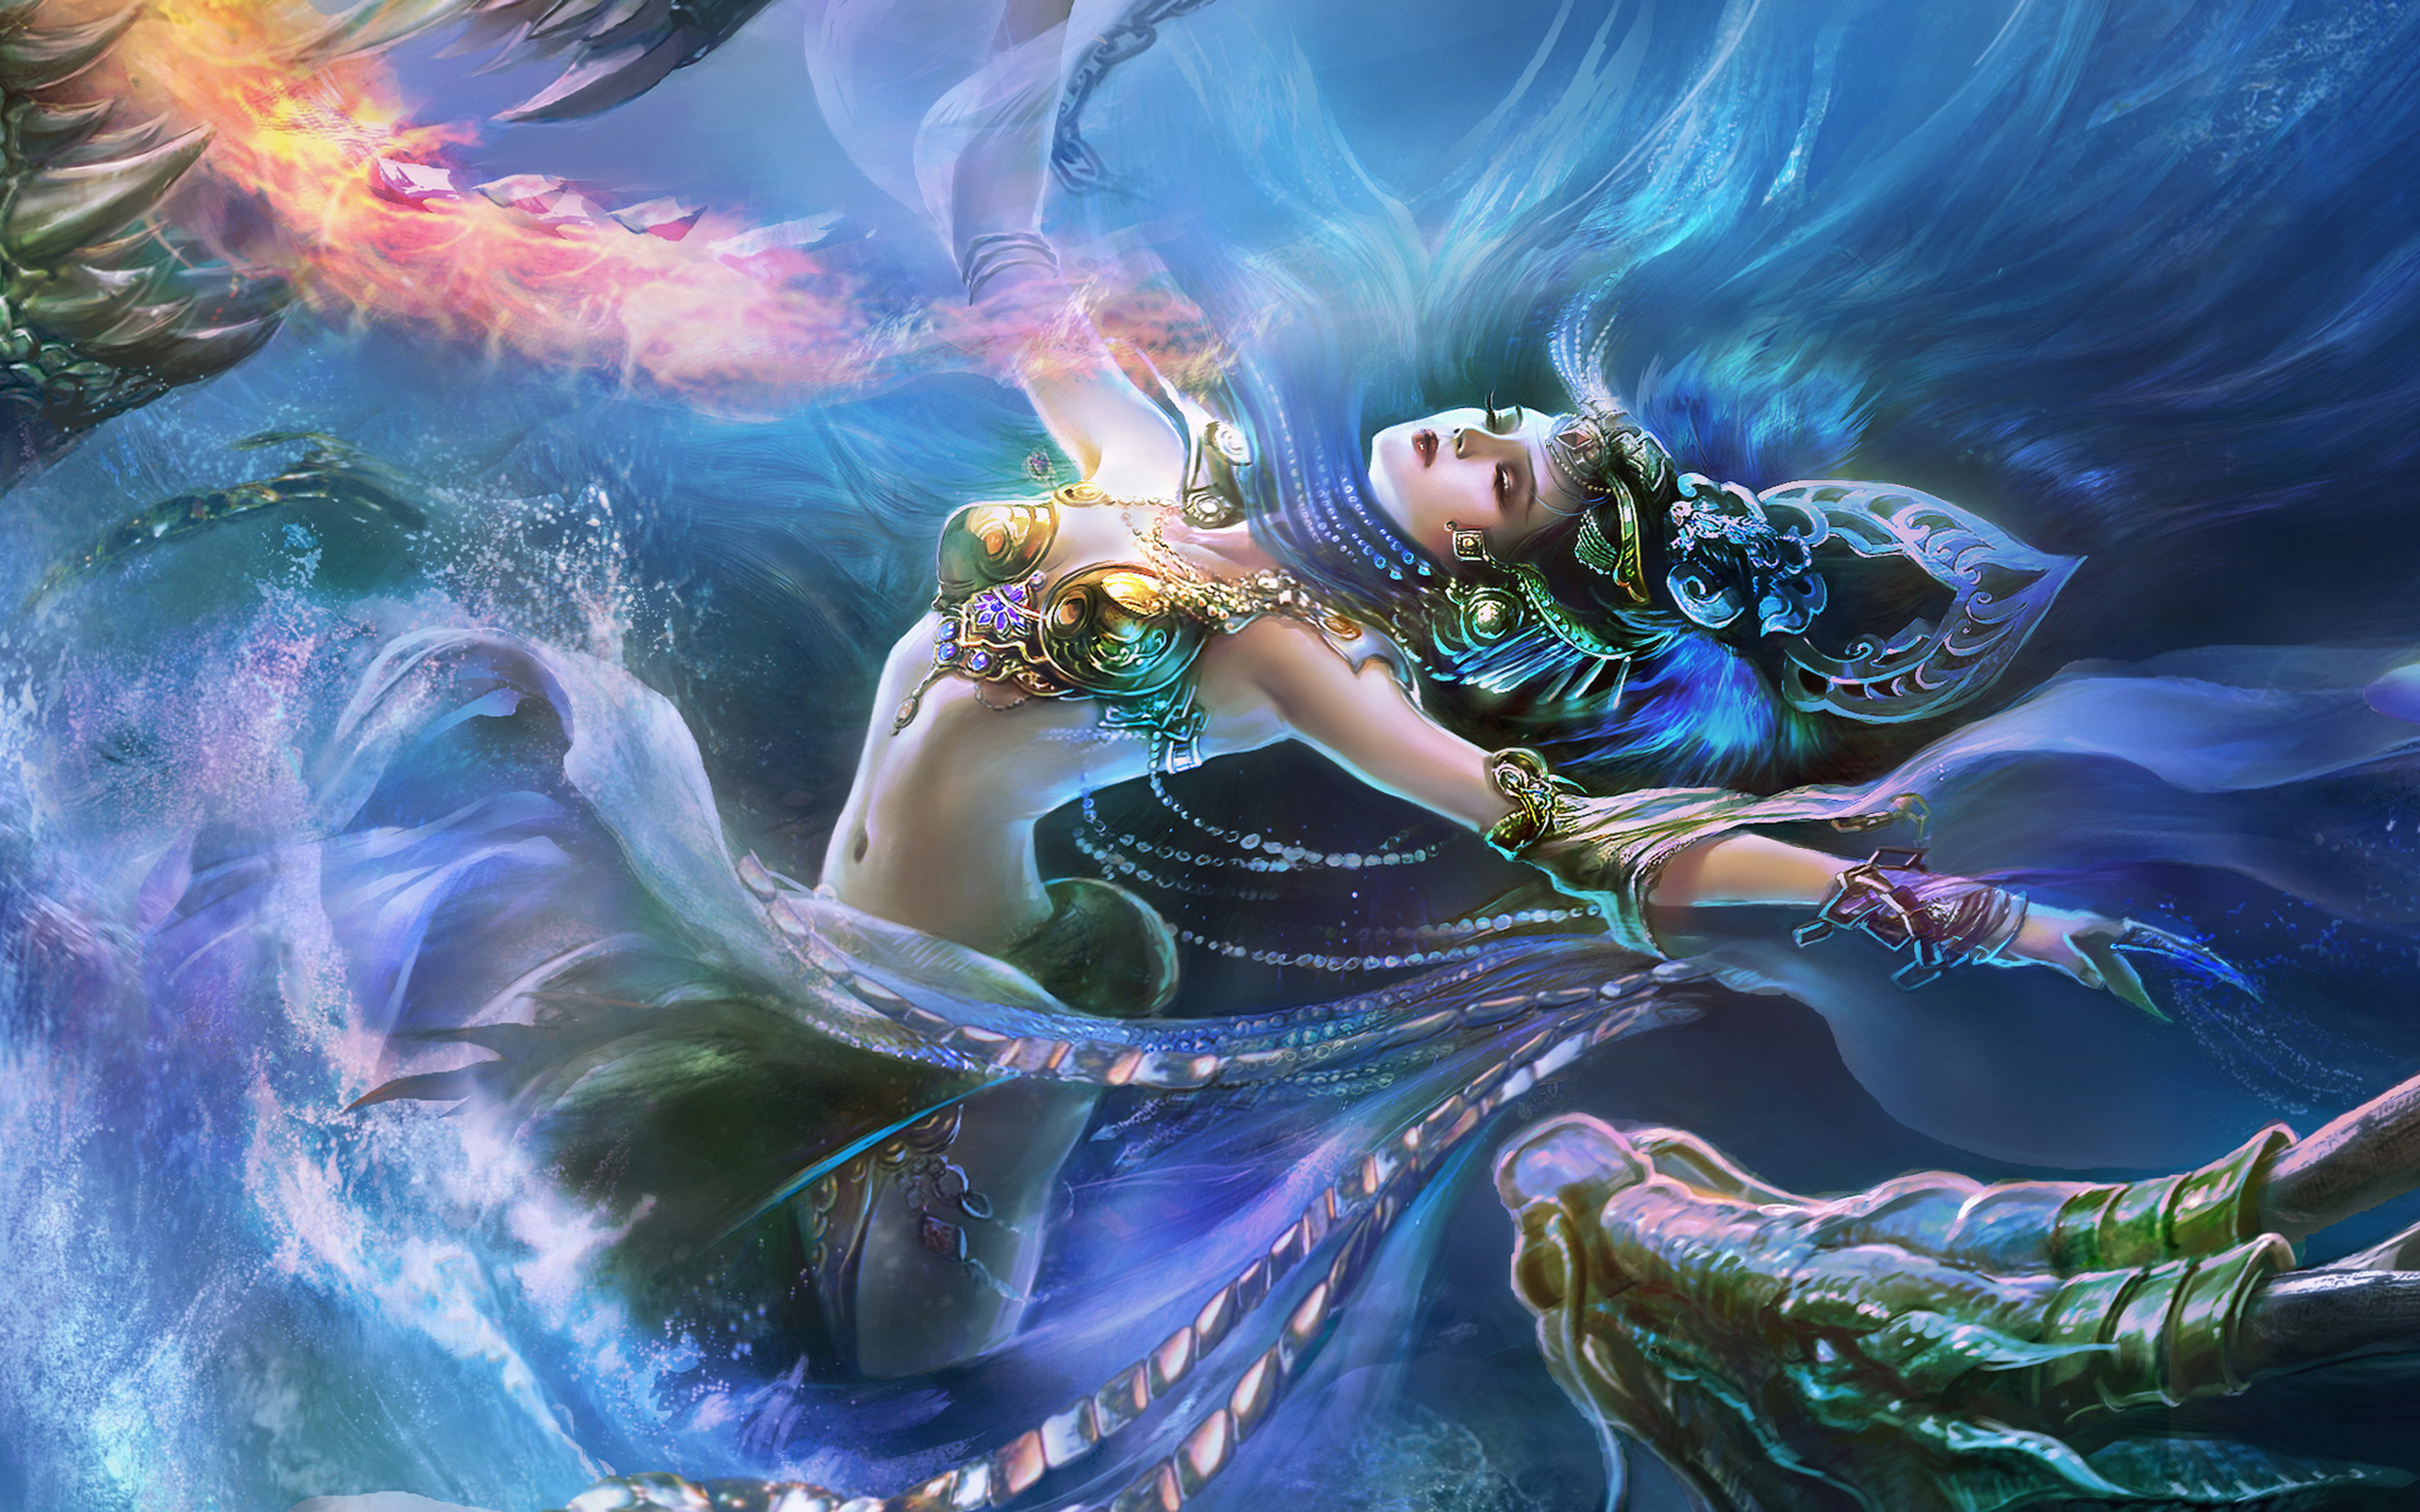 Asian Girl Hd Wallpaper 1920x1200 Fantasy Girl Water And Fire Dragon Jewelry Crown Art